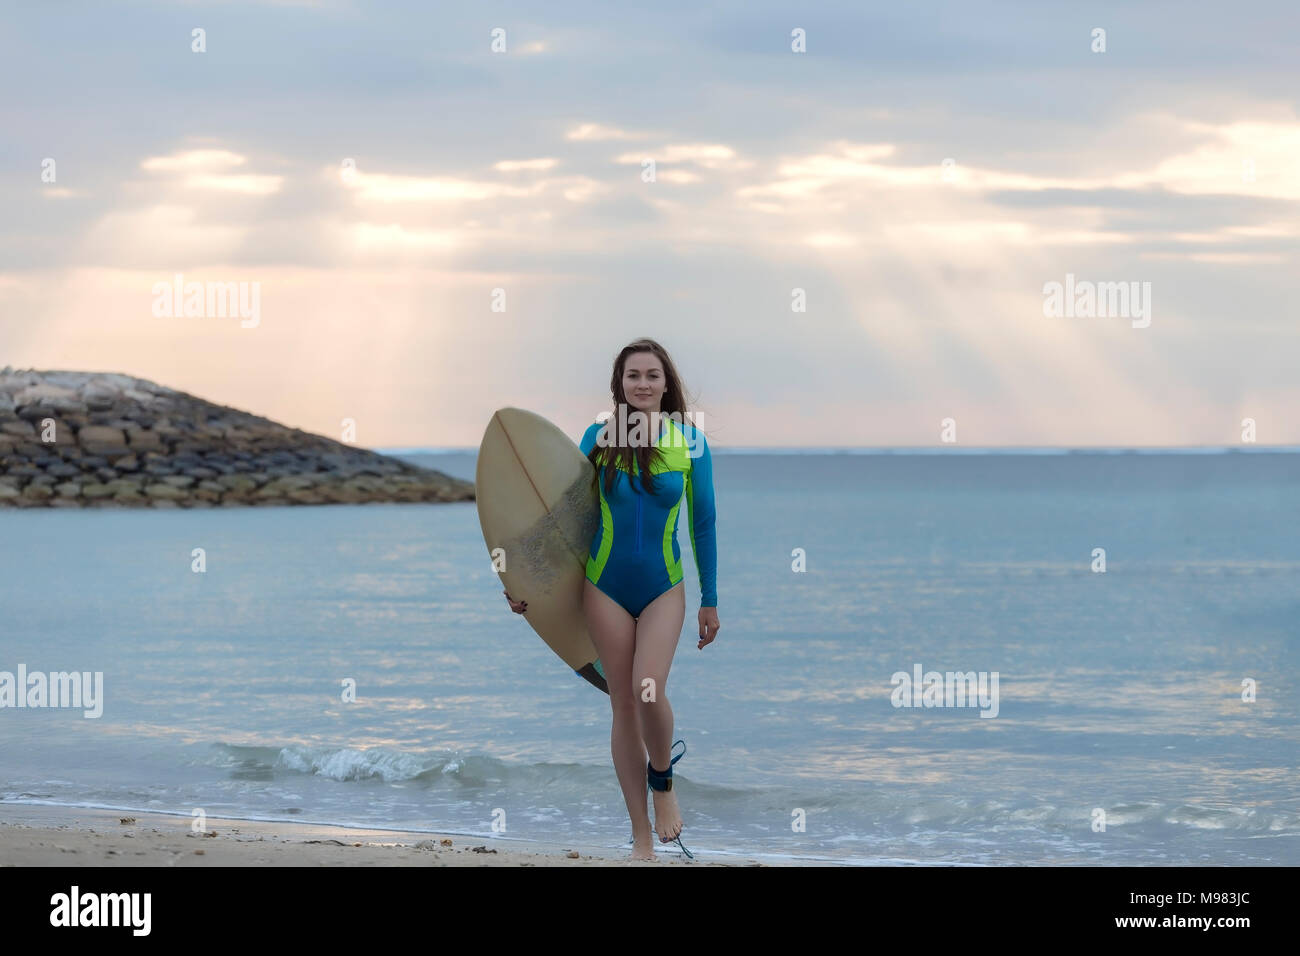 Indonesia, Bali, young woman with surf board walking at beach - Stock Image